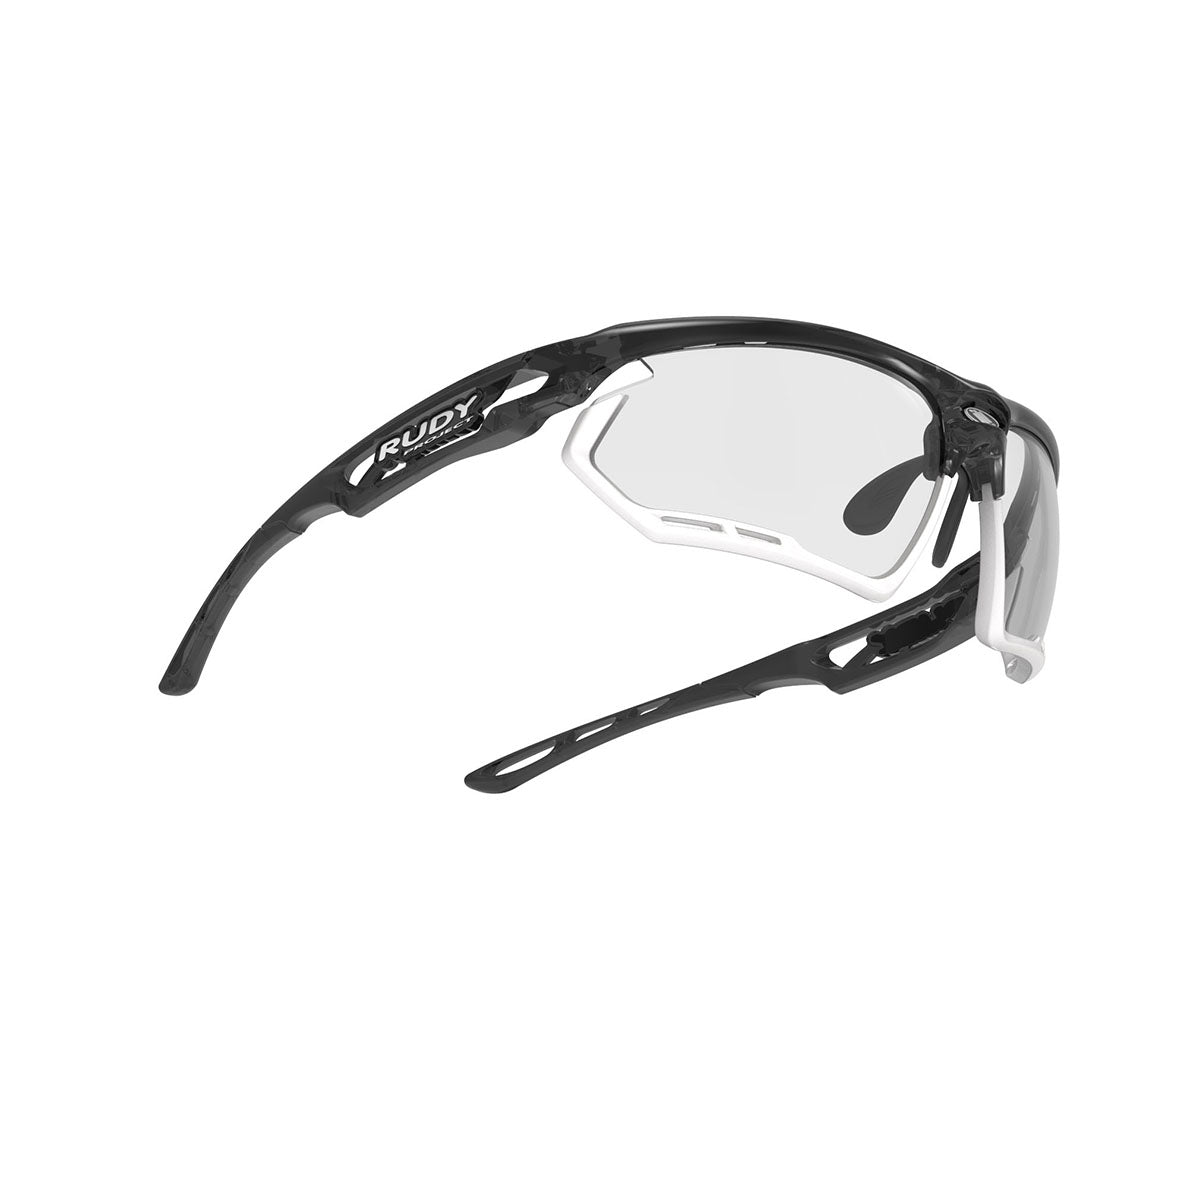 Rudy Project - Fotonyk - frame color: Crystal Graphite - lens color: ImpactX-2 Photochromic Clear to Black - Bumper Color: White - photo angle: Bottom Front Angle Variant Hover Image